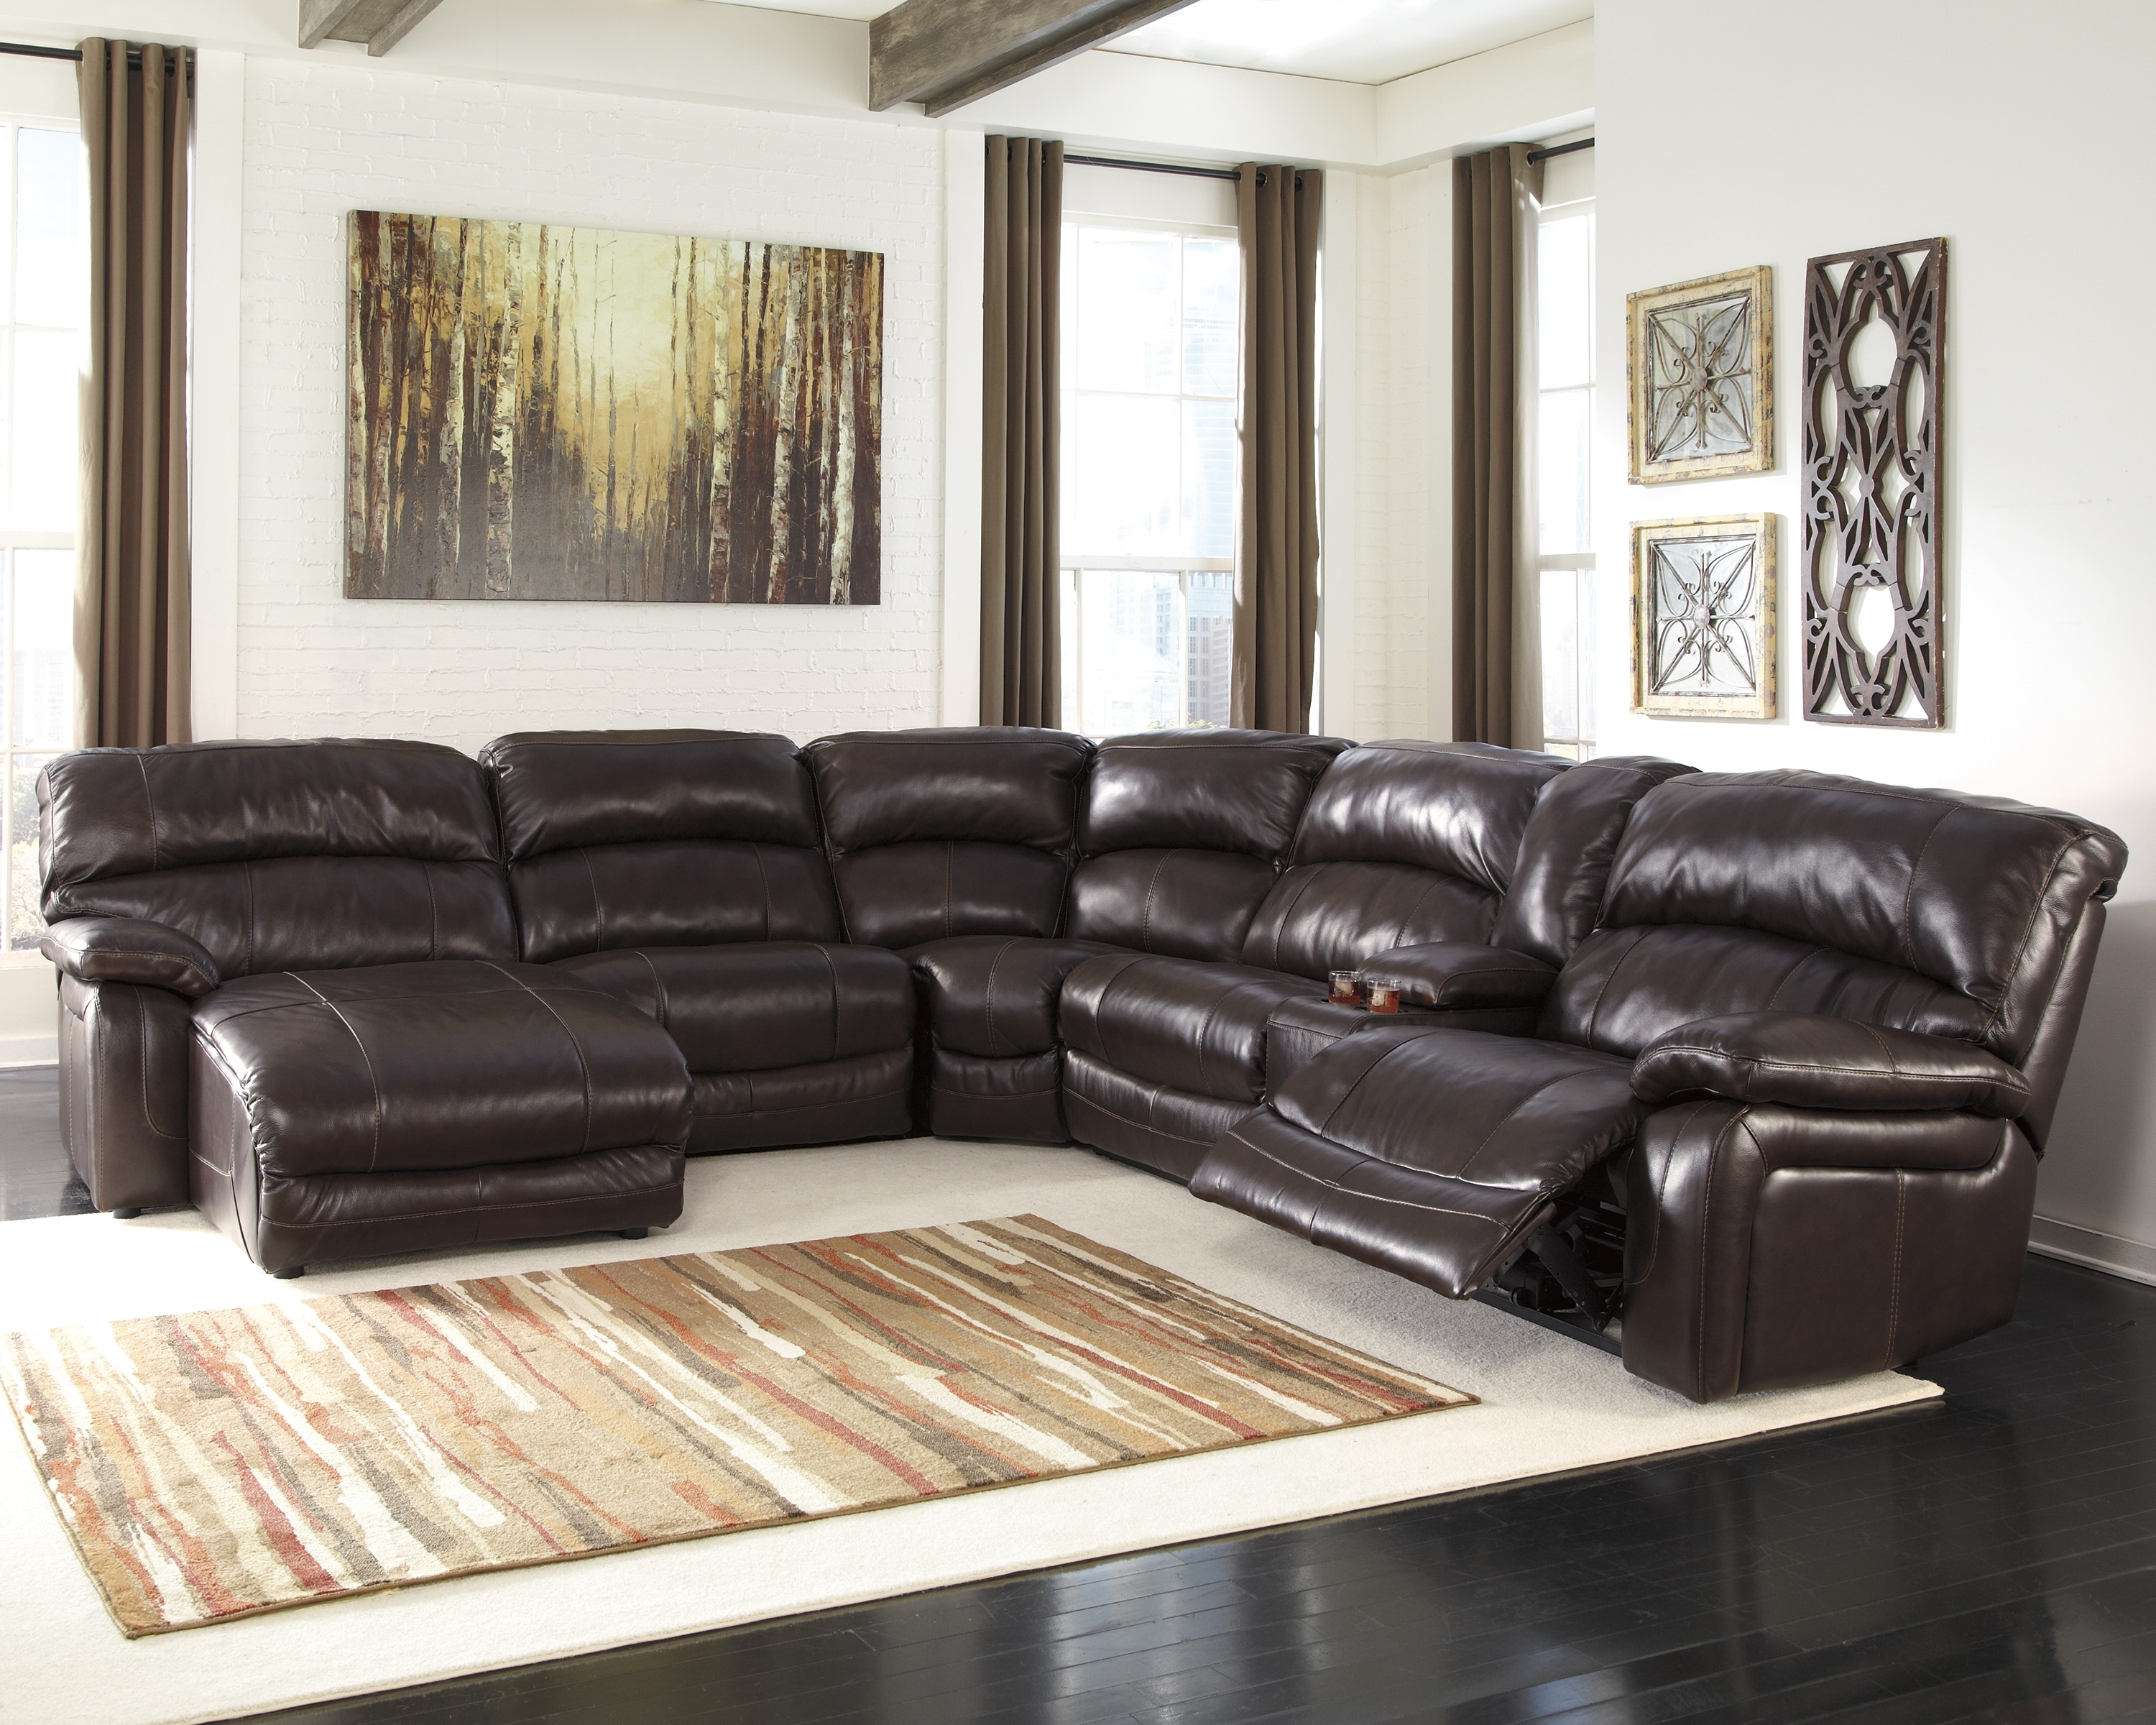 Cheap Sectional With Regard To Raymour And Flanigan Sectional Sofas (View 11 of 15)